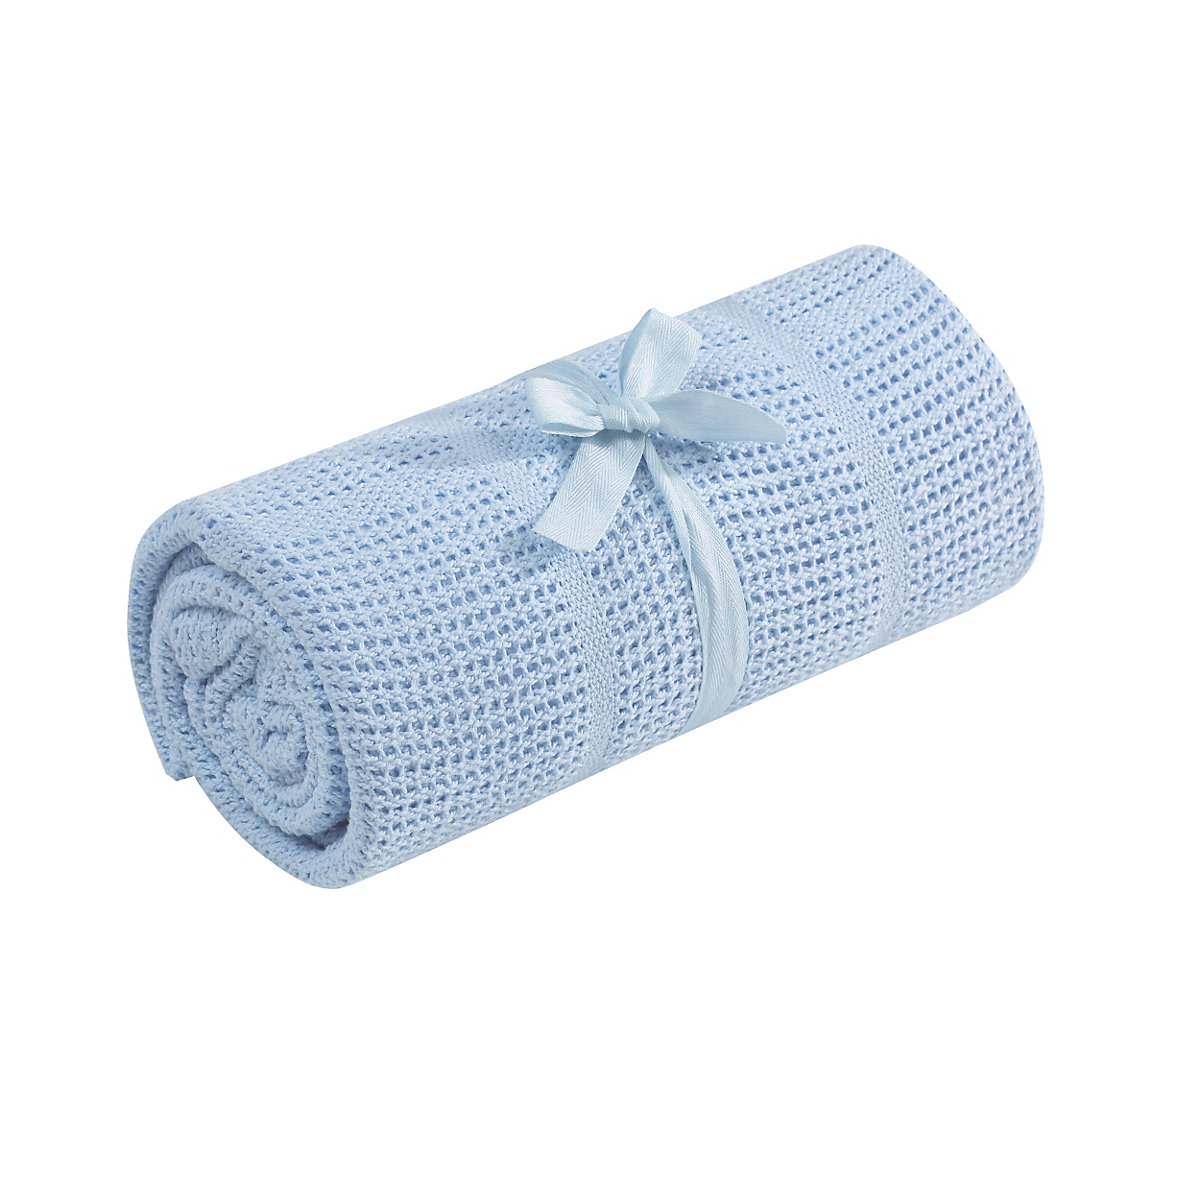 B Baby Cot or Cot Bed Cellular Cotton Blanket- Blue Size